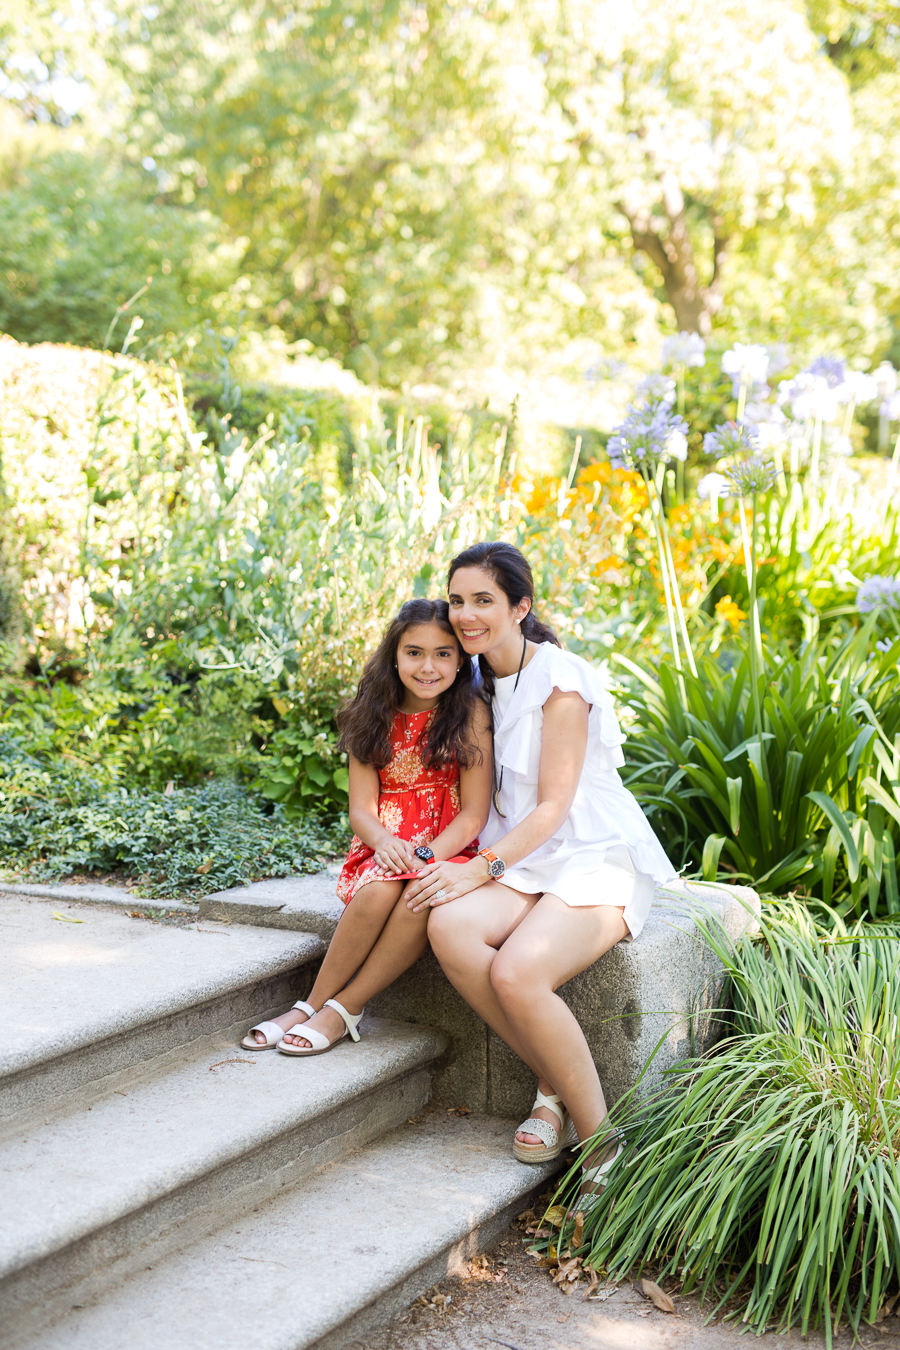 real-jardin-botánico-madrid-mother-daughter-photo-session_001.jpg